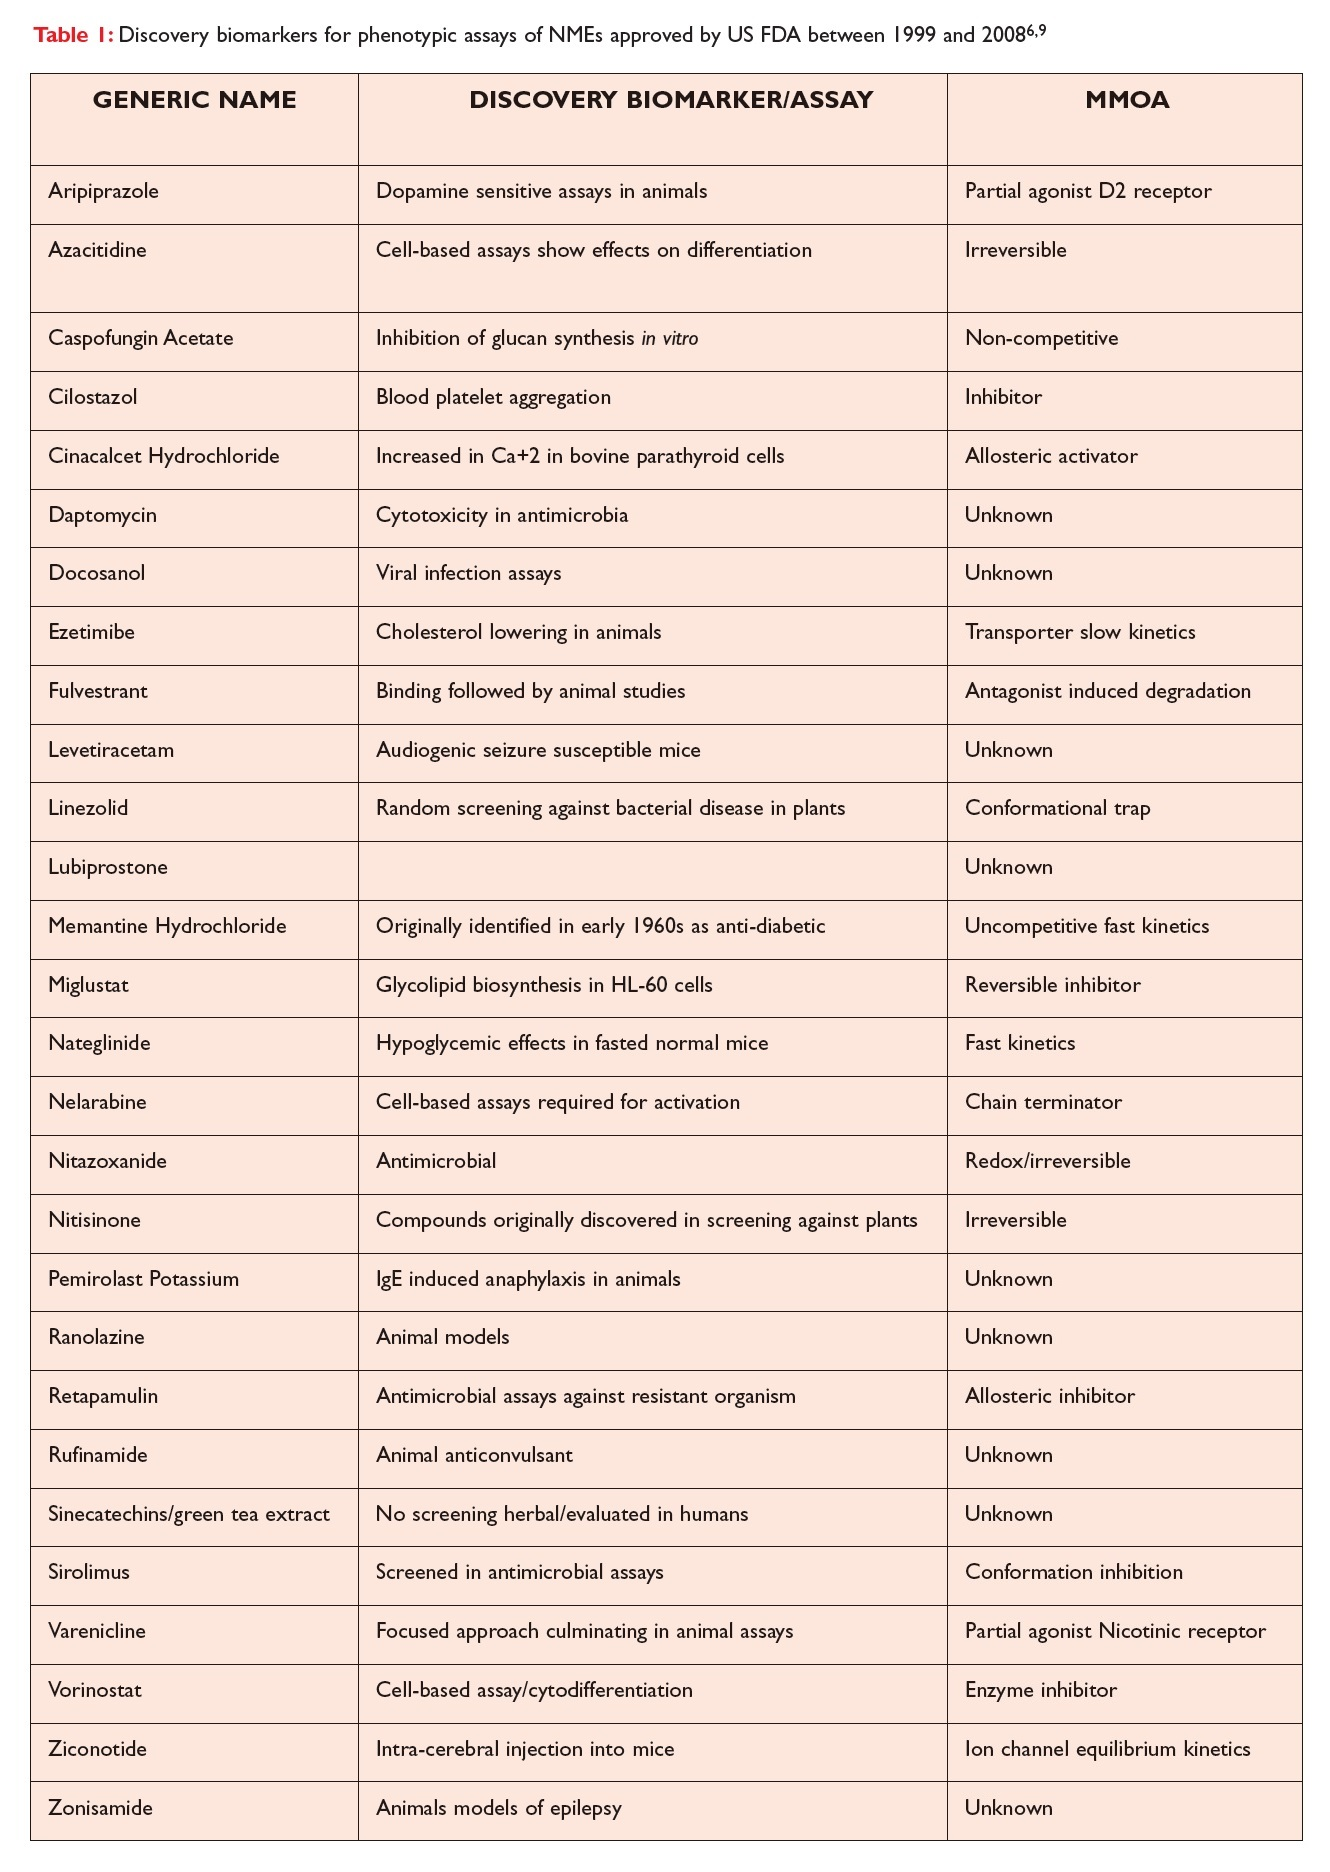 Table 1 Discovery biomarkers for phenotypic assays of NMEs approced by US FDA between 1999 and 2008